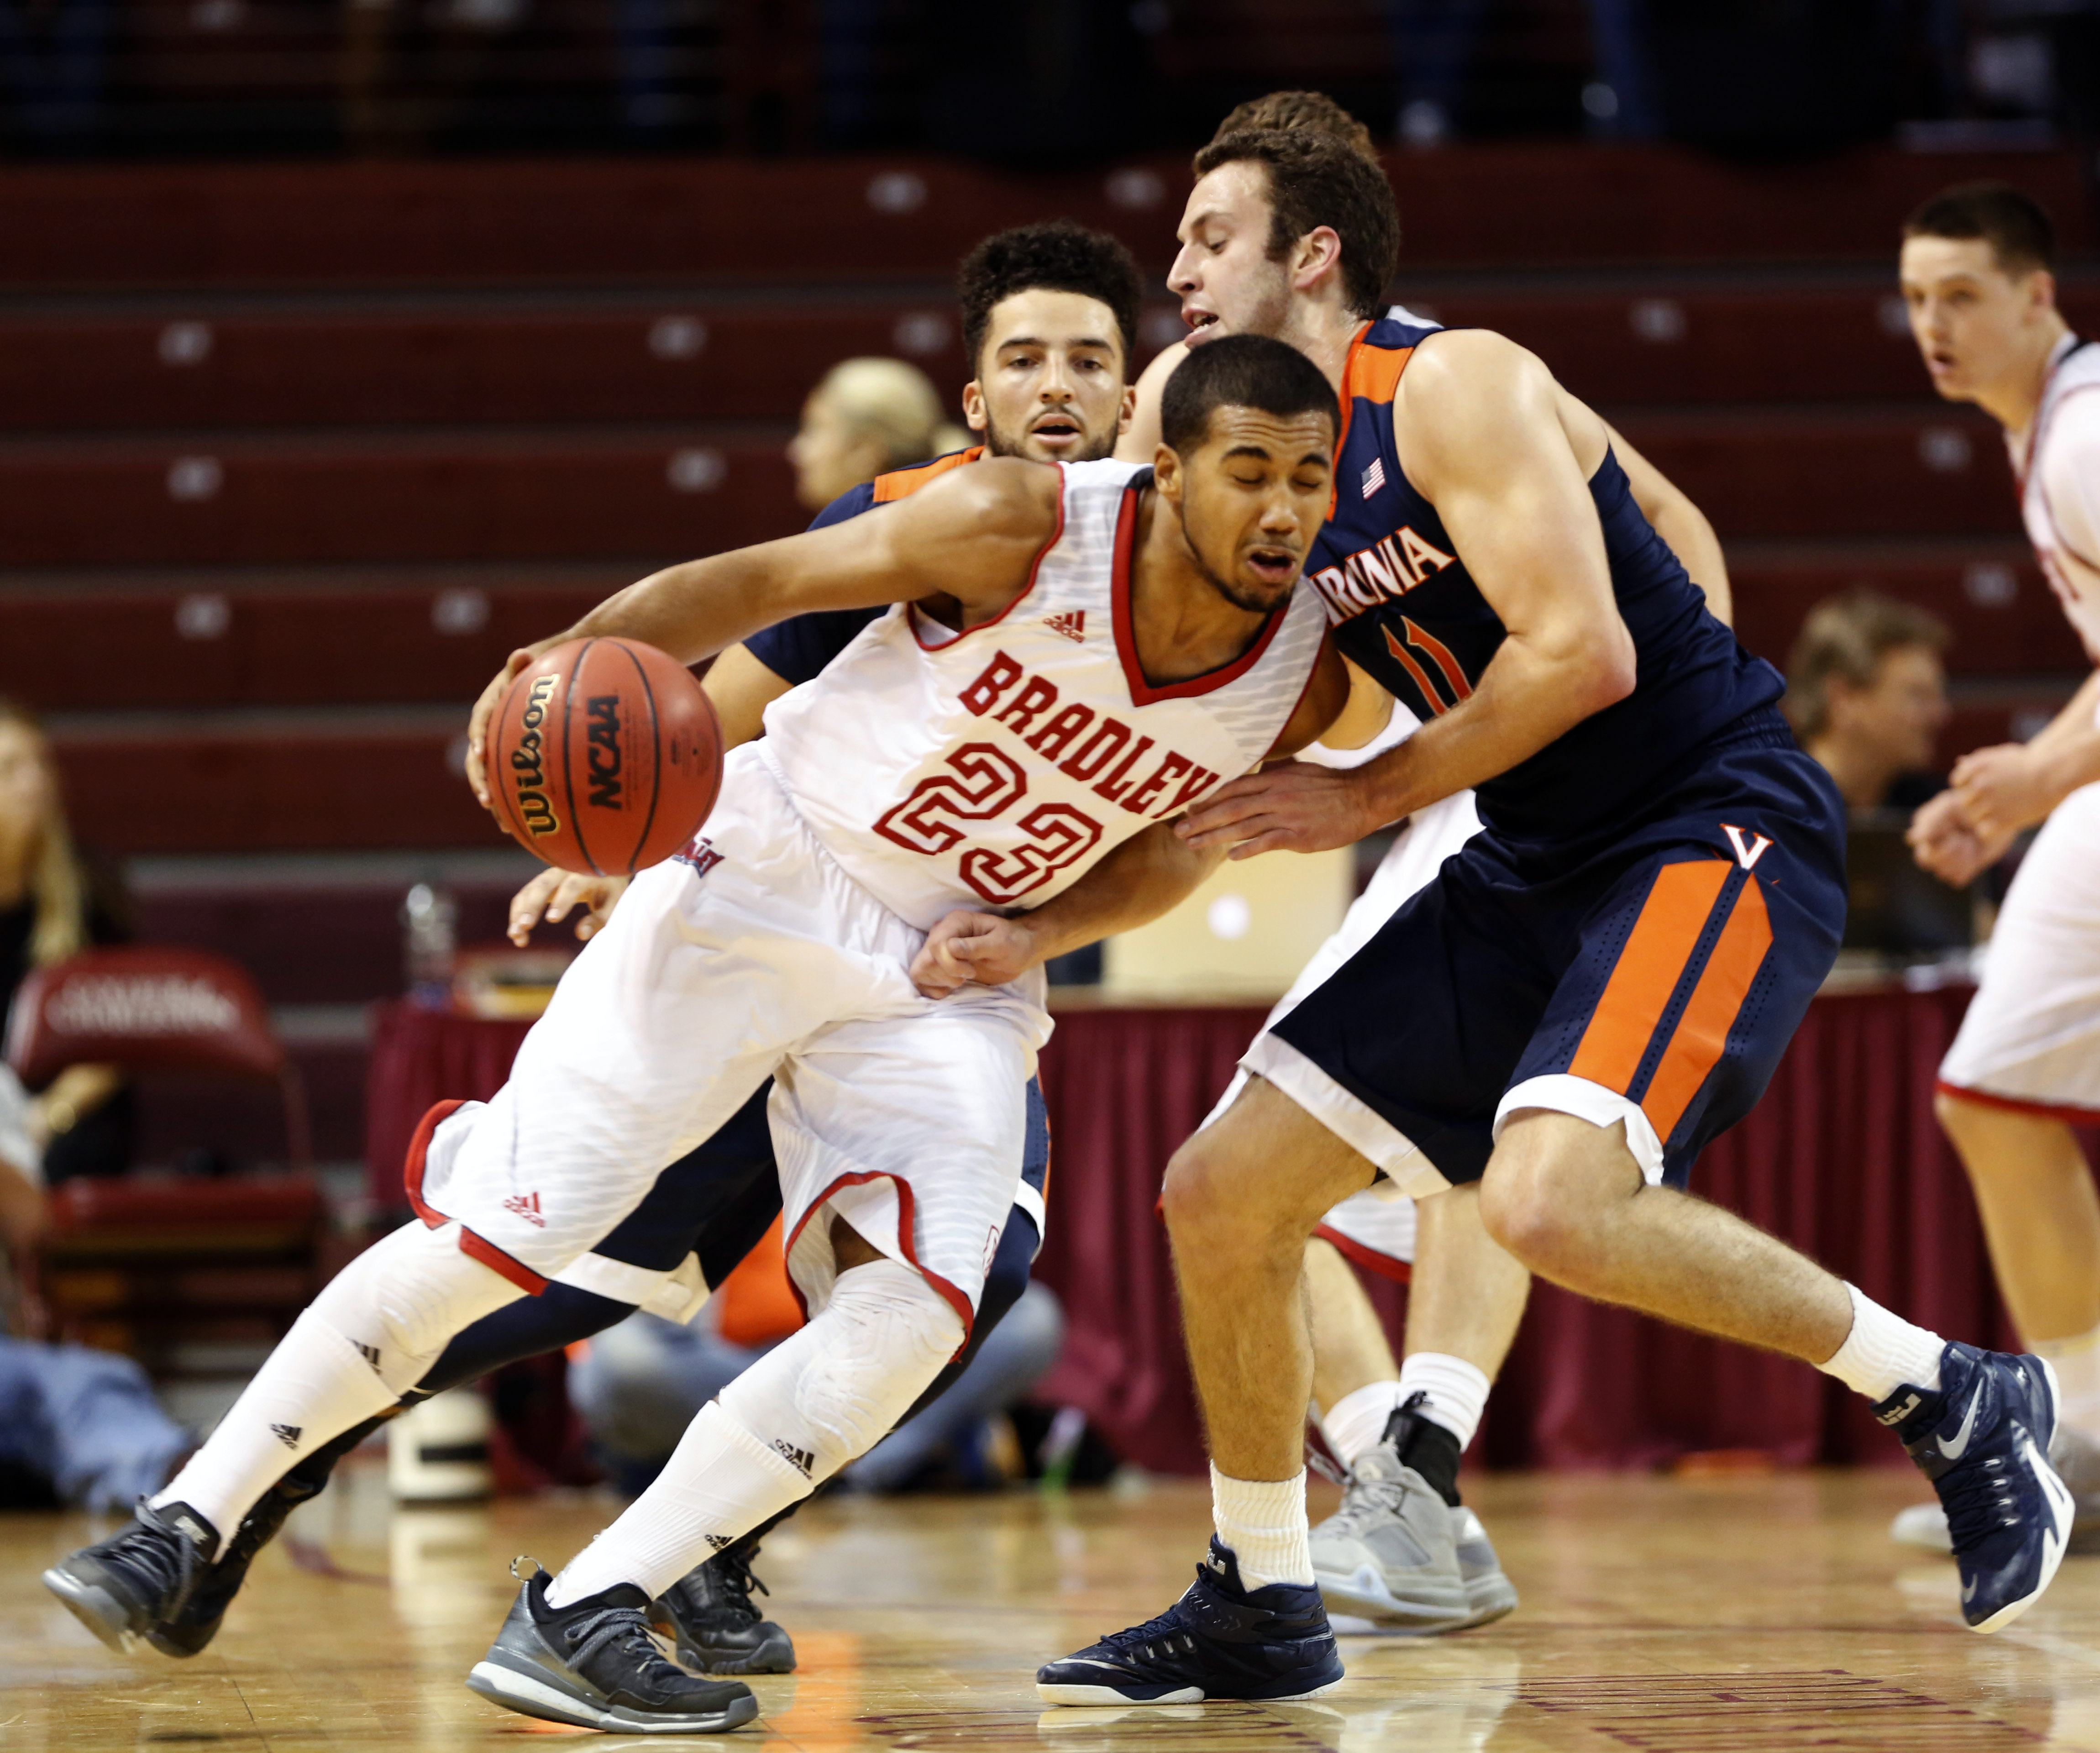 Virginia's Evan Nolte, right, gets run over by Bradley's Dwayne Lautier-Ogunleye during the first half of an NCAA college basketball game at the Charleston Classic at TD Arena, Thursday Nov. 19, 2015, in Charleston, S.C.  (AP Photo/Mic Smith)